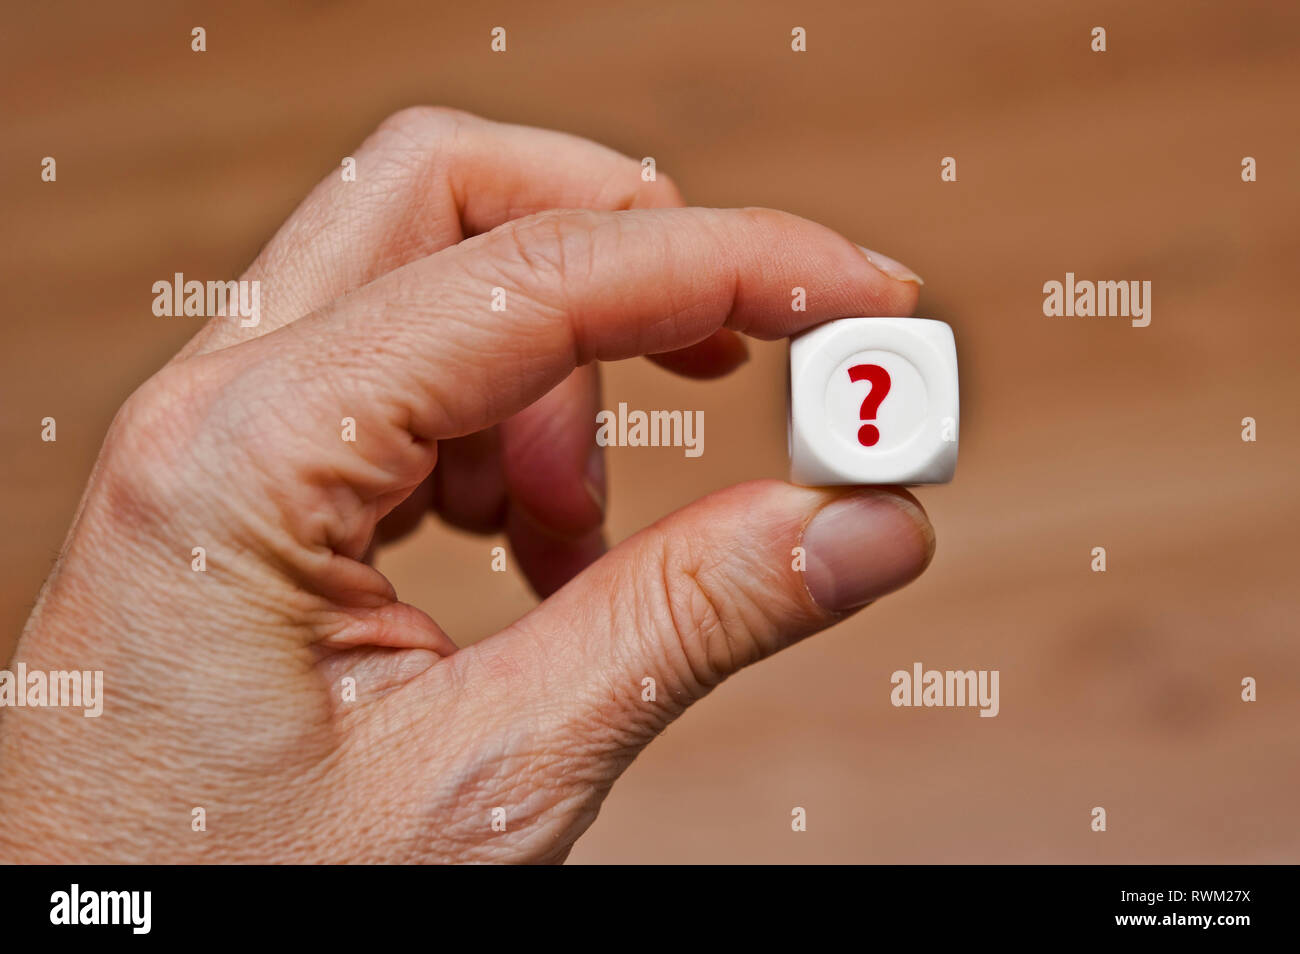 hand holding a die with question mark - Stock Image